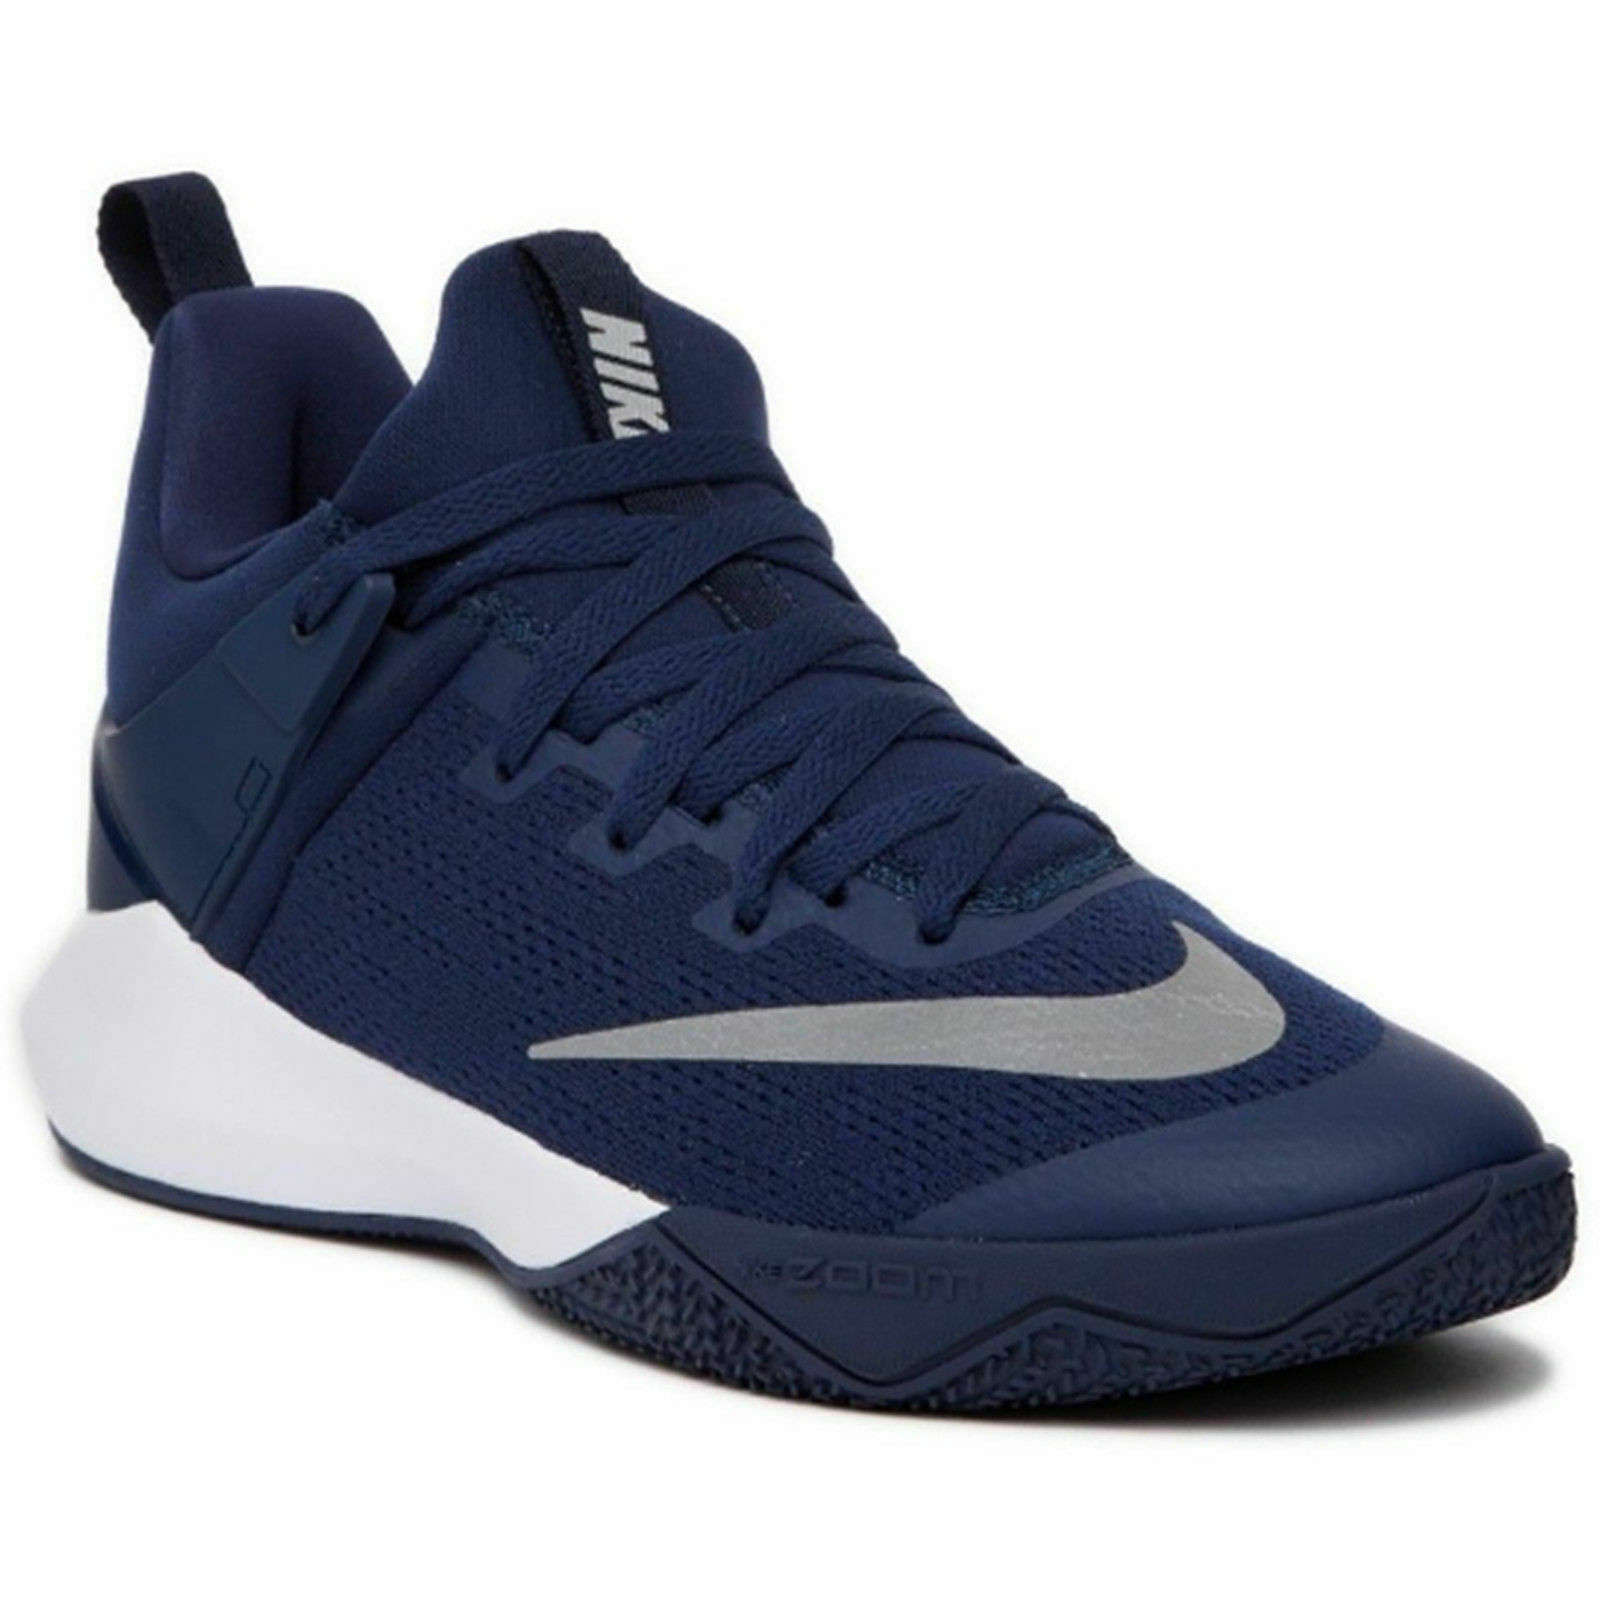 Nike Zoom Shift TB Basketball shoes 12.5 bluee White Grey Silver 897811 401 NEW